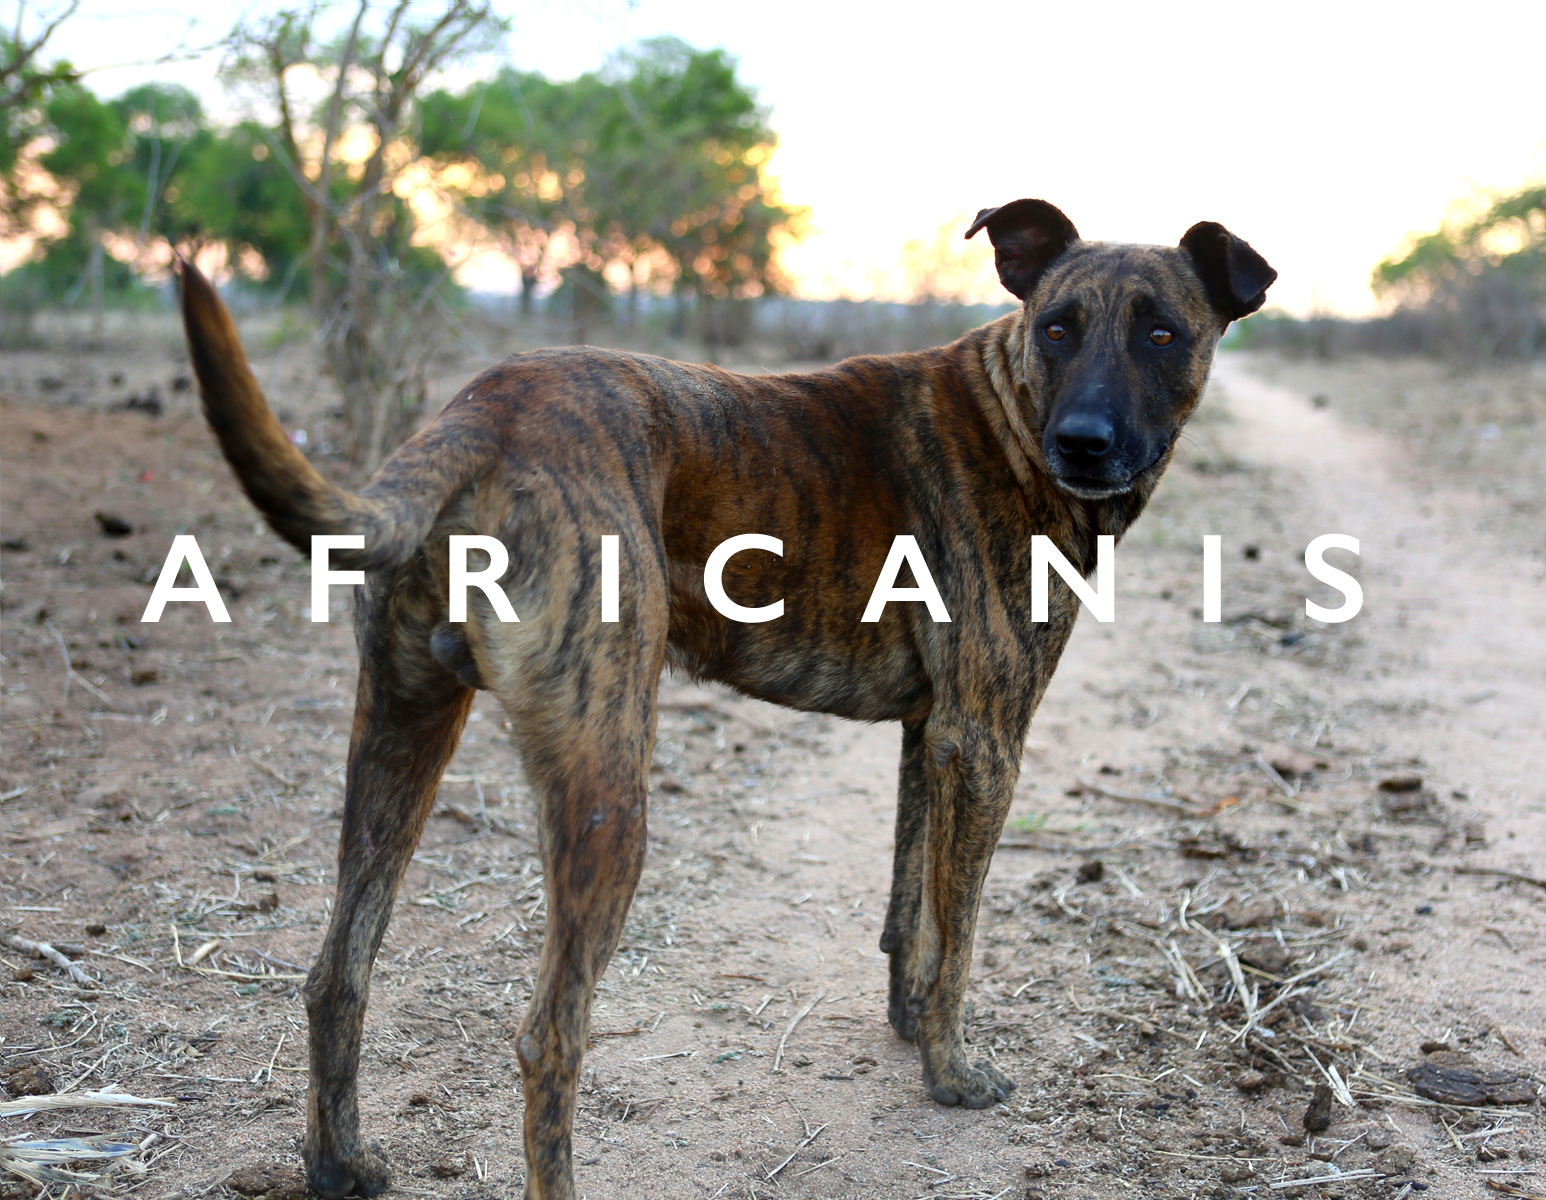 THE DOG SHAPED BY AFRICANS FOR AFRICA